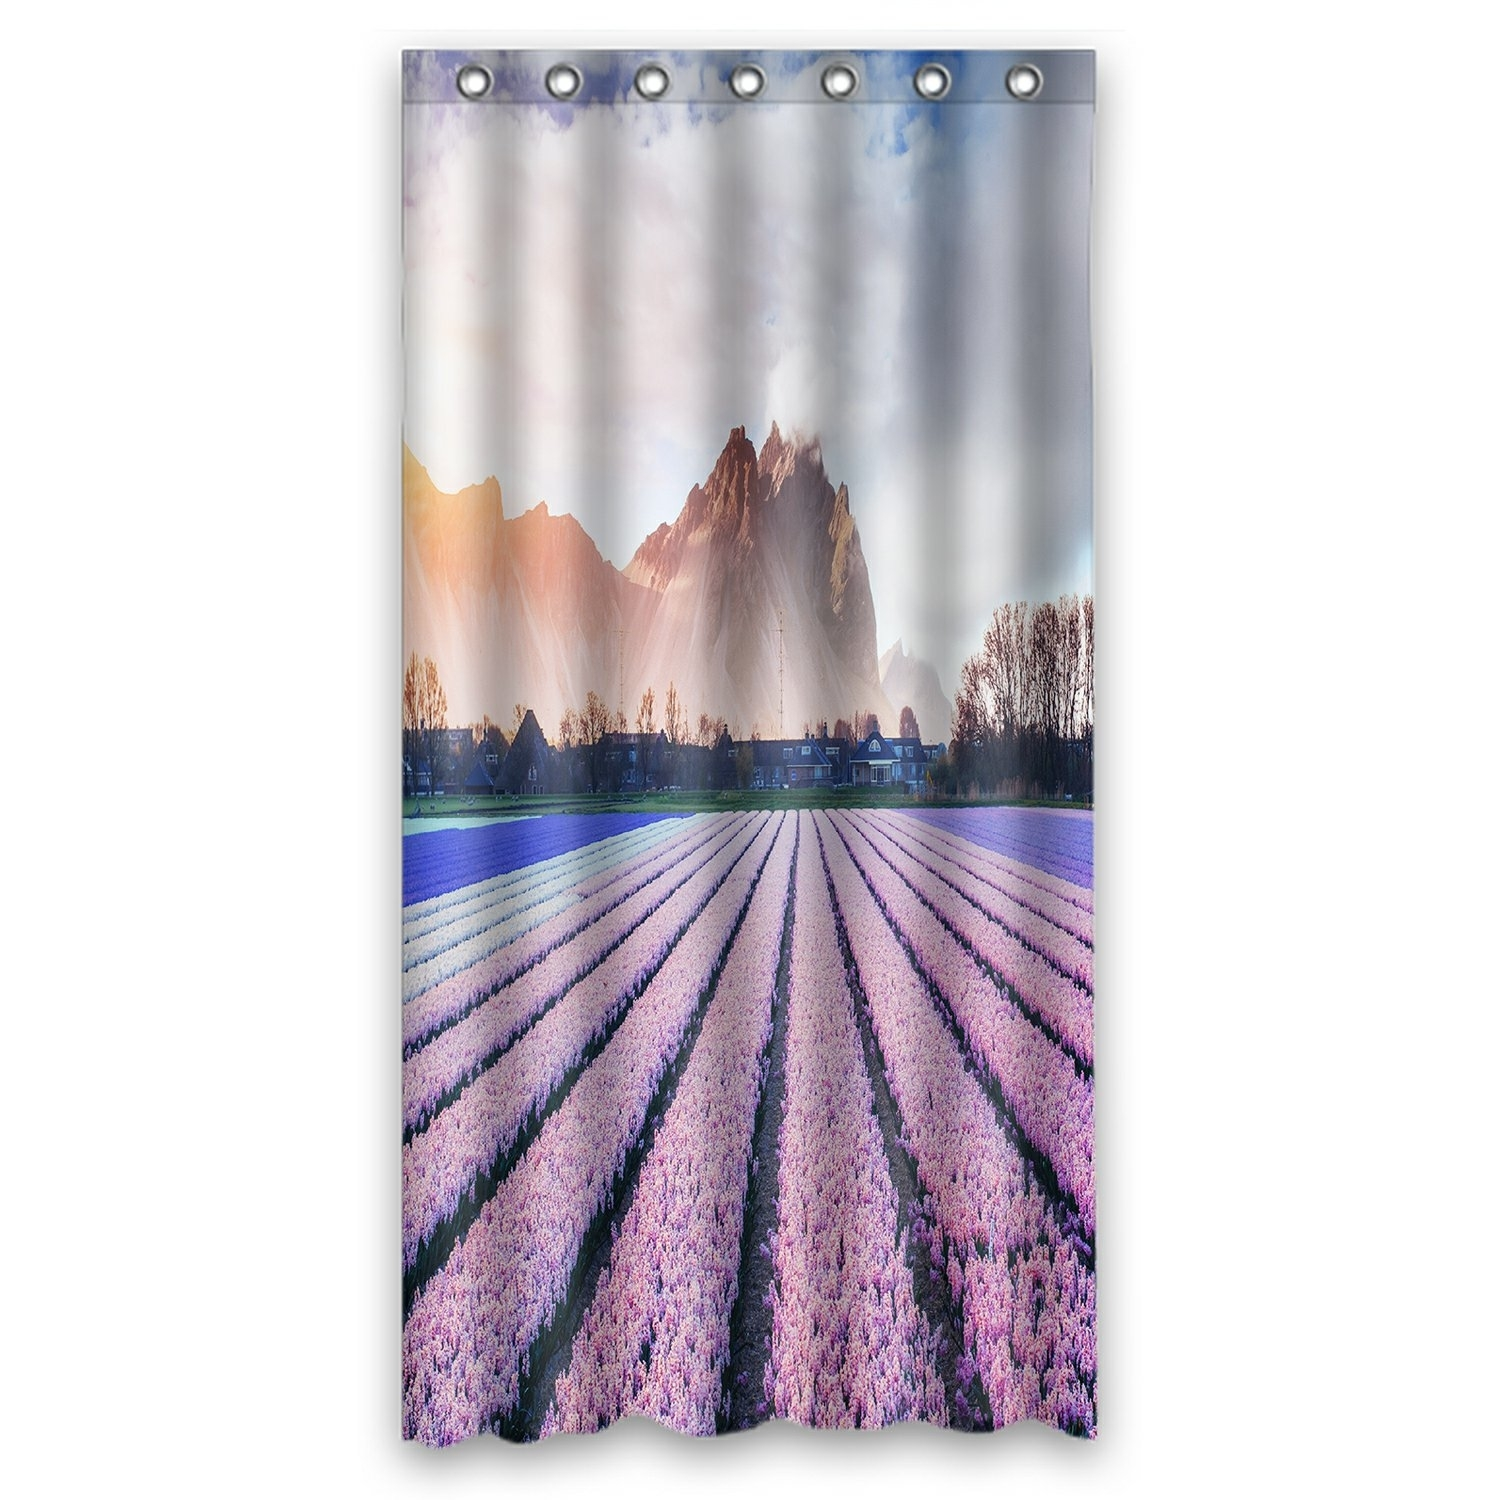 Landscape Scenery Nature Shower Curtain, Beautiful Mountains in the Mist at Sunset Shower Curtain 36x72 inch